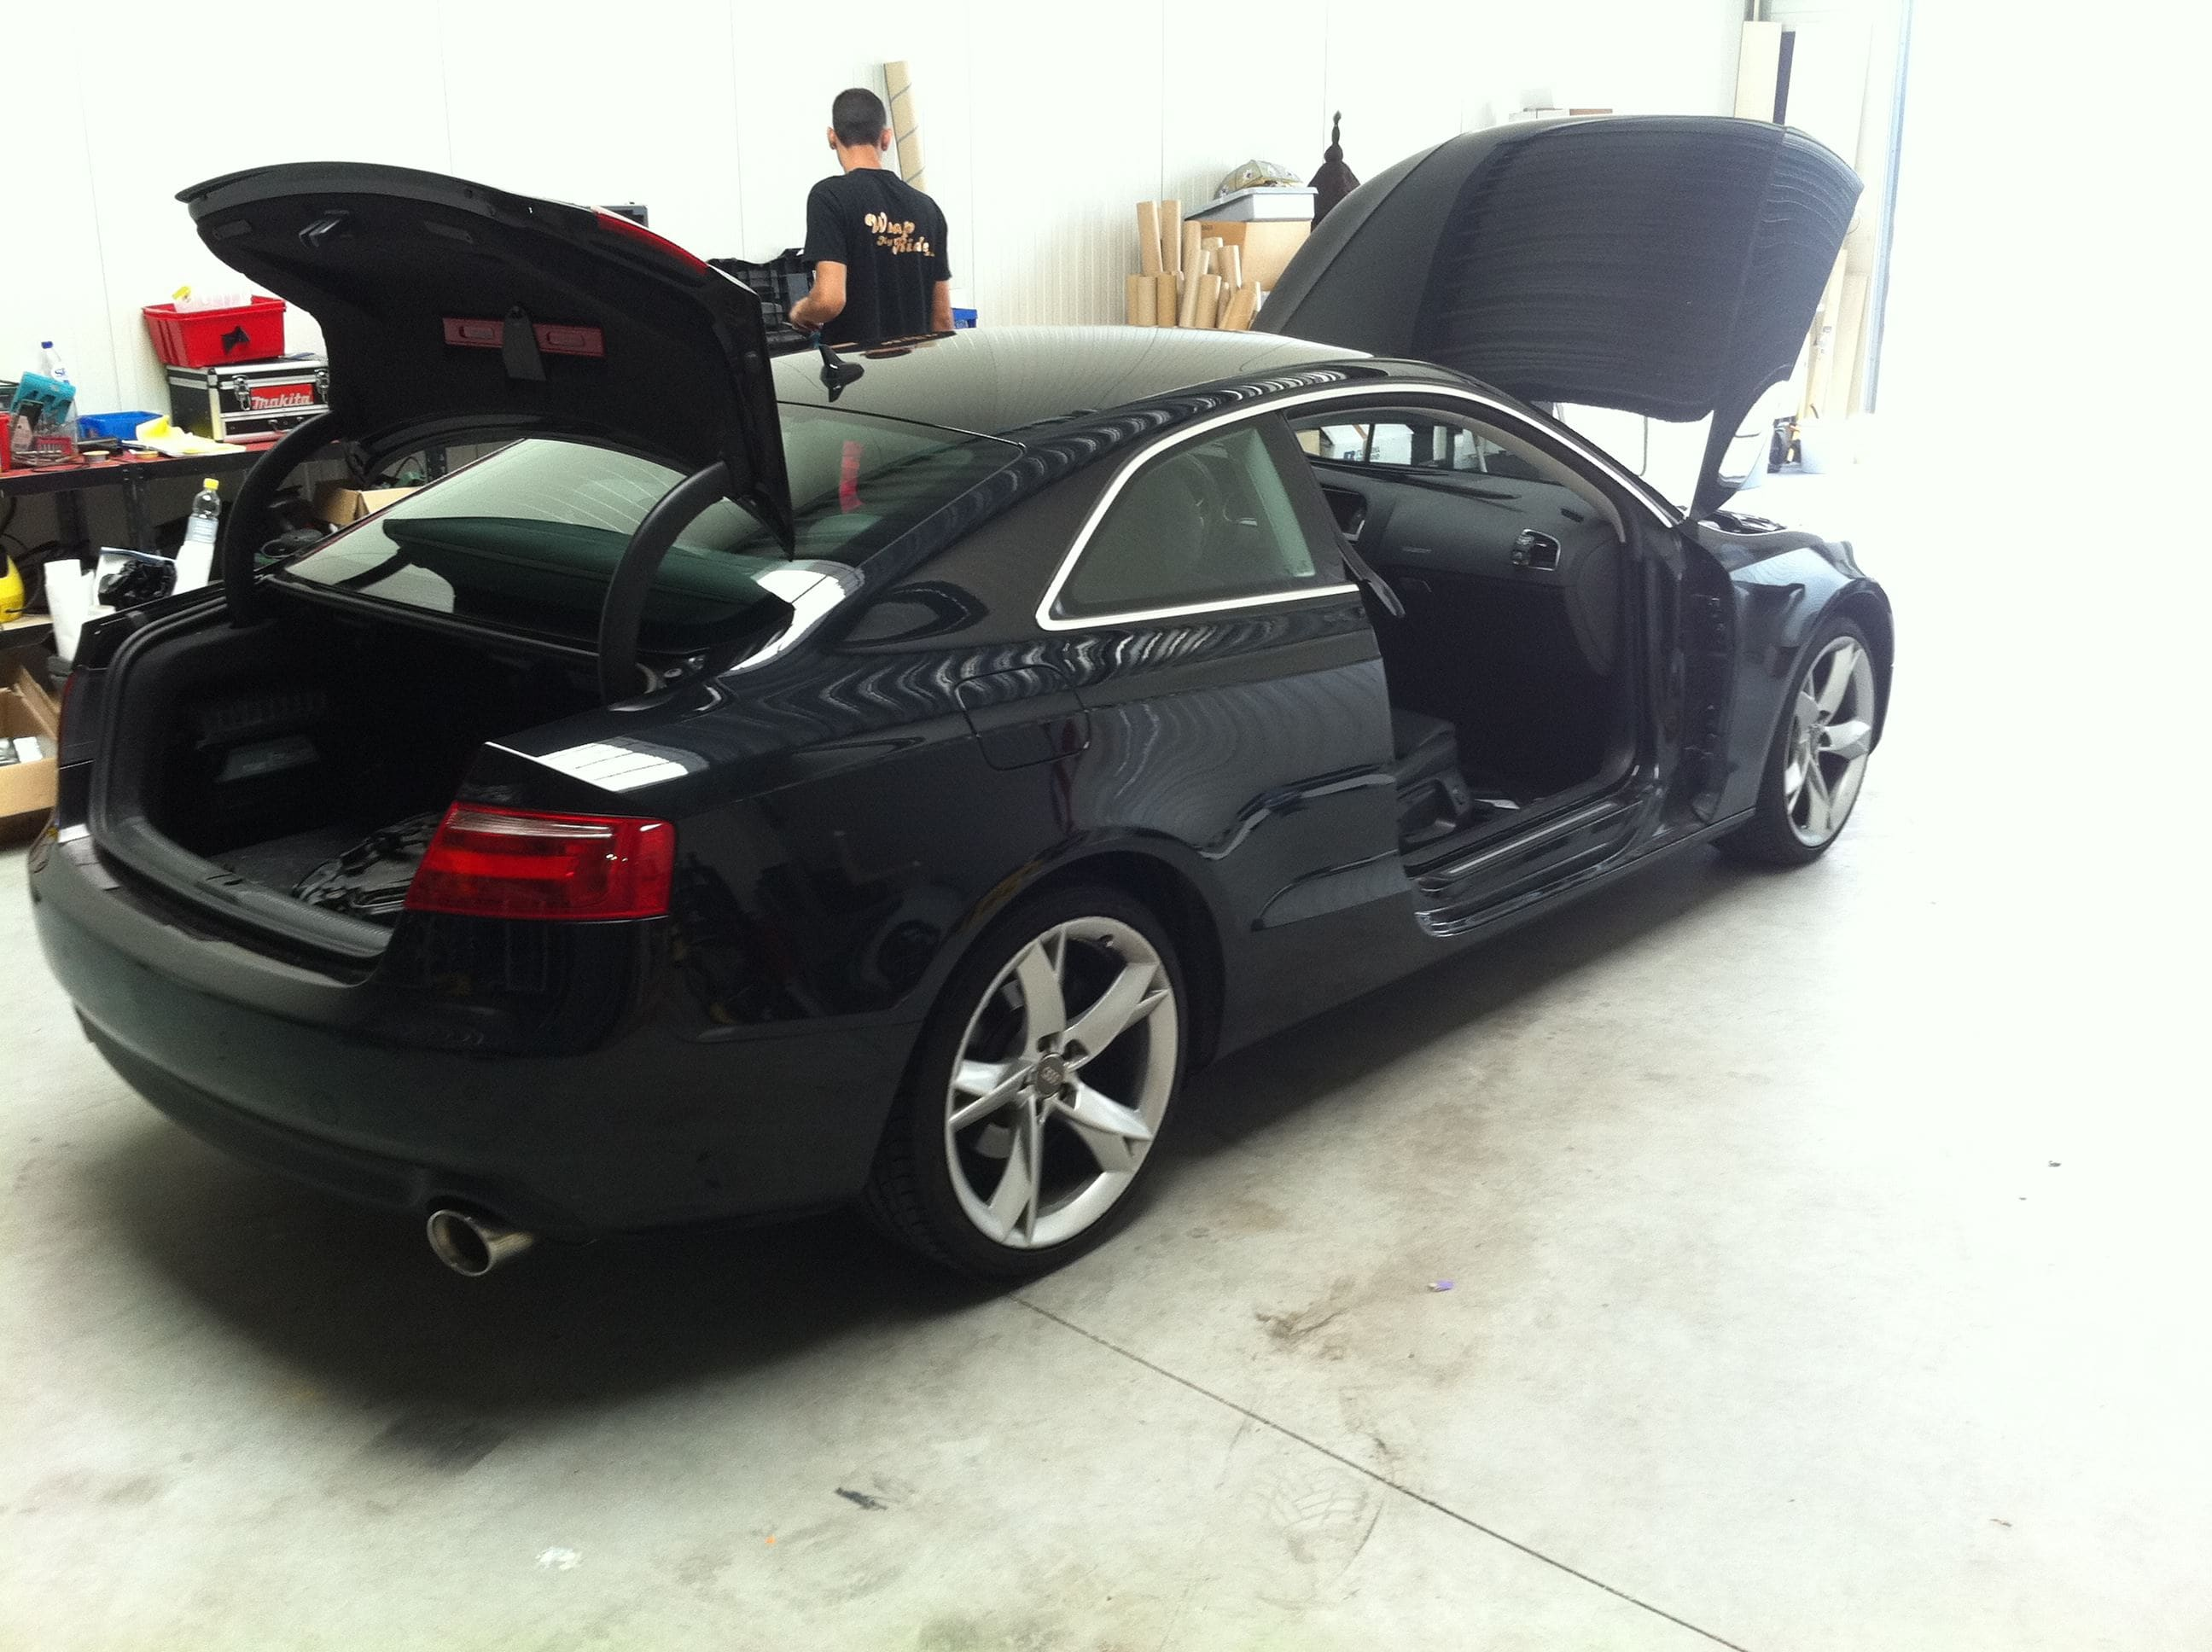 Audi A5 coupe met Metallic Witte Wrap, Carwrapping door Wrapmyride.nu Foto-nr:4661, ©2020